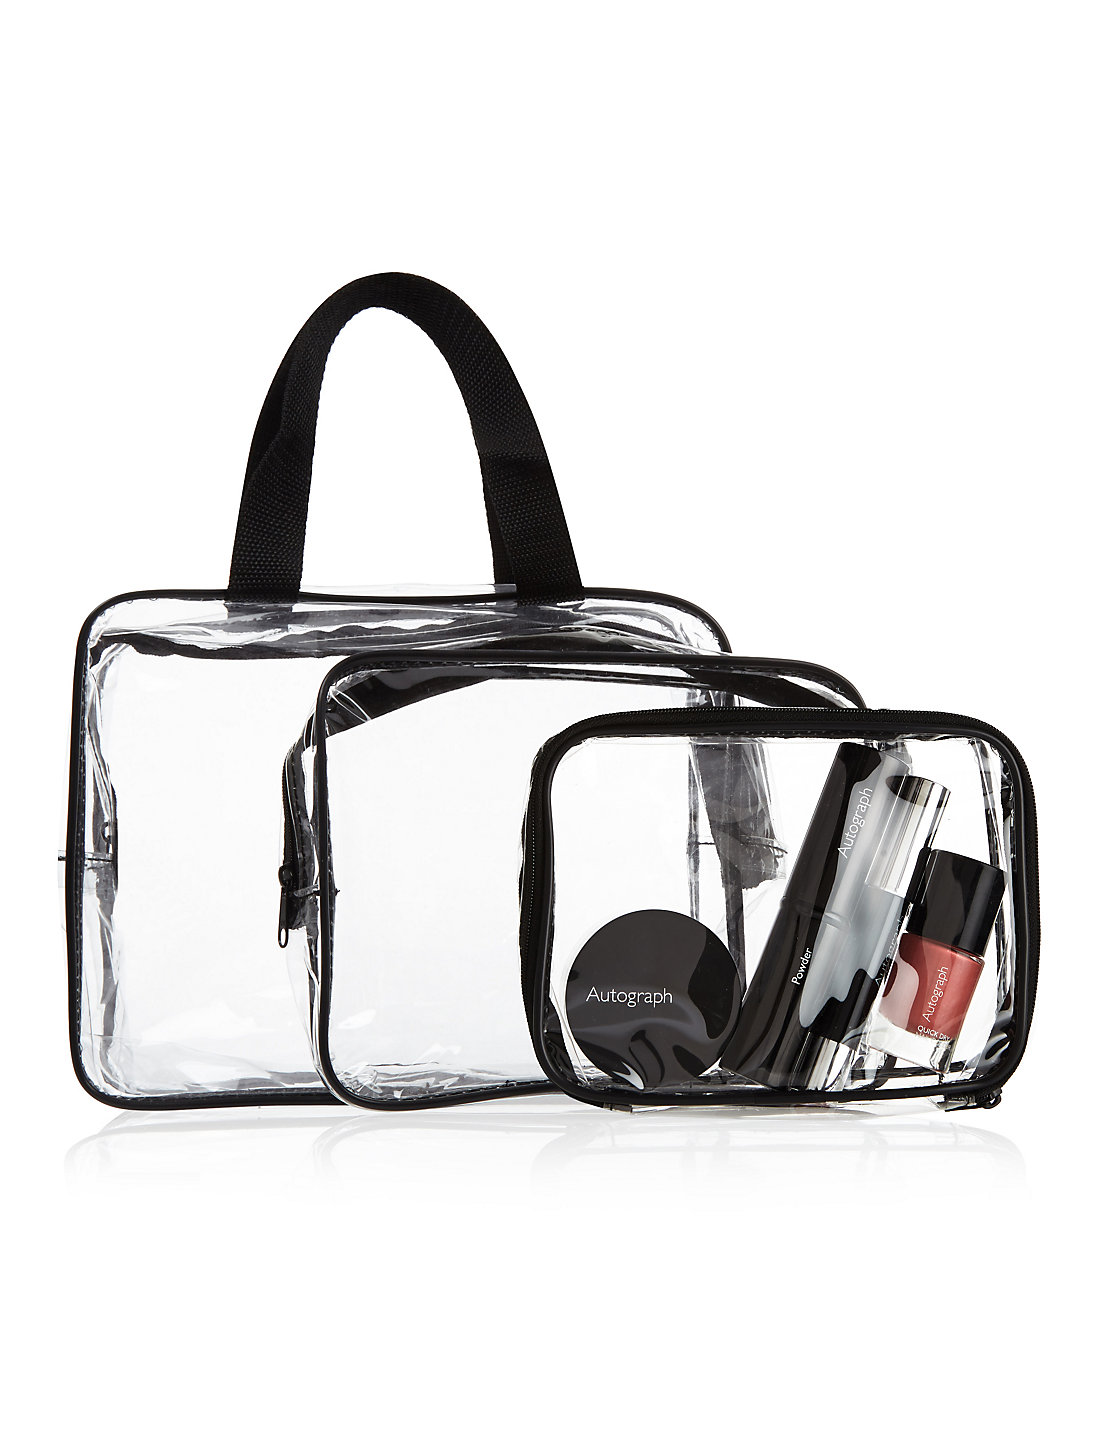 Outstanding Value Piece Clear Cosmetic Bag Set MS - Travel bag for bathroom items for bathroom decor ideas